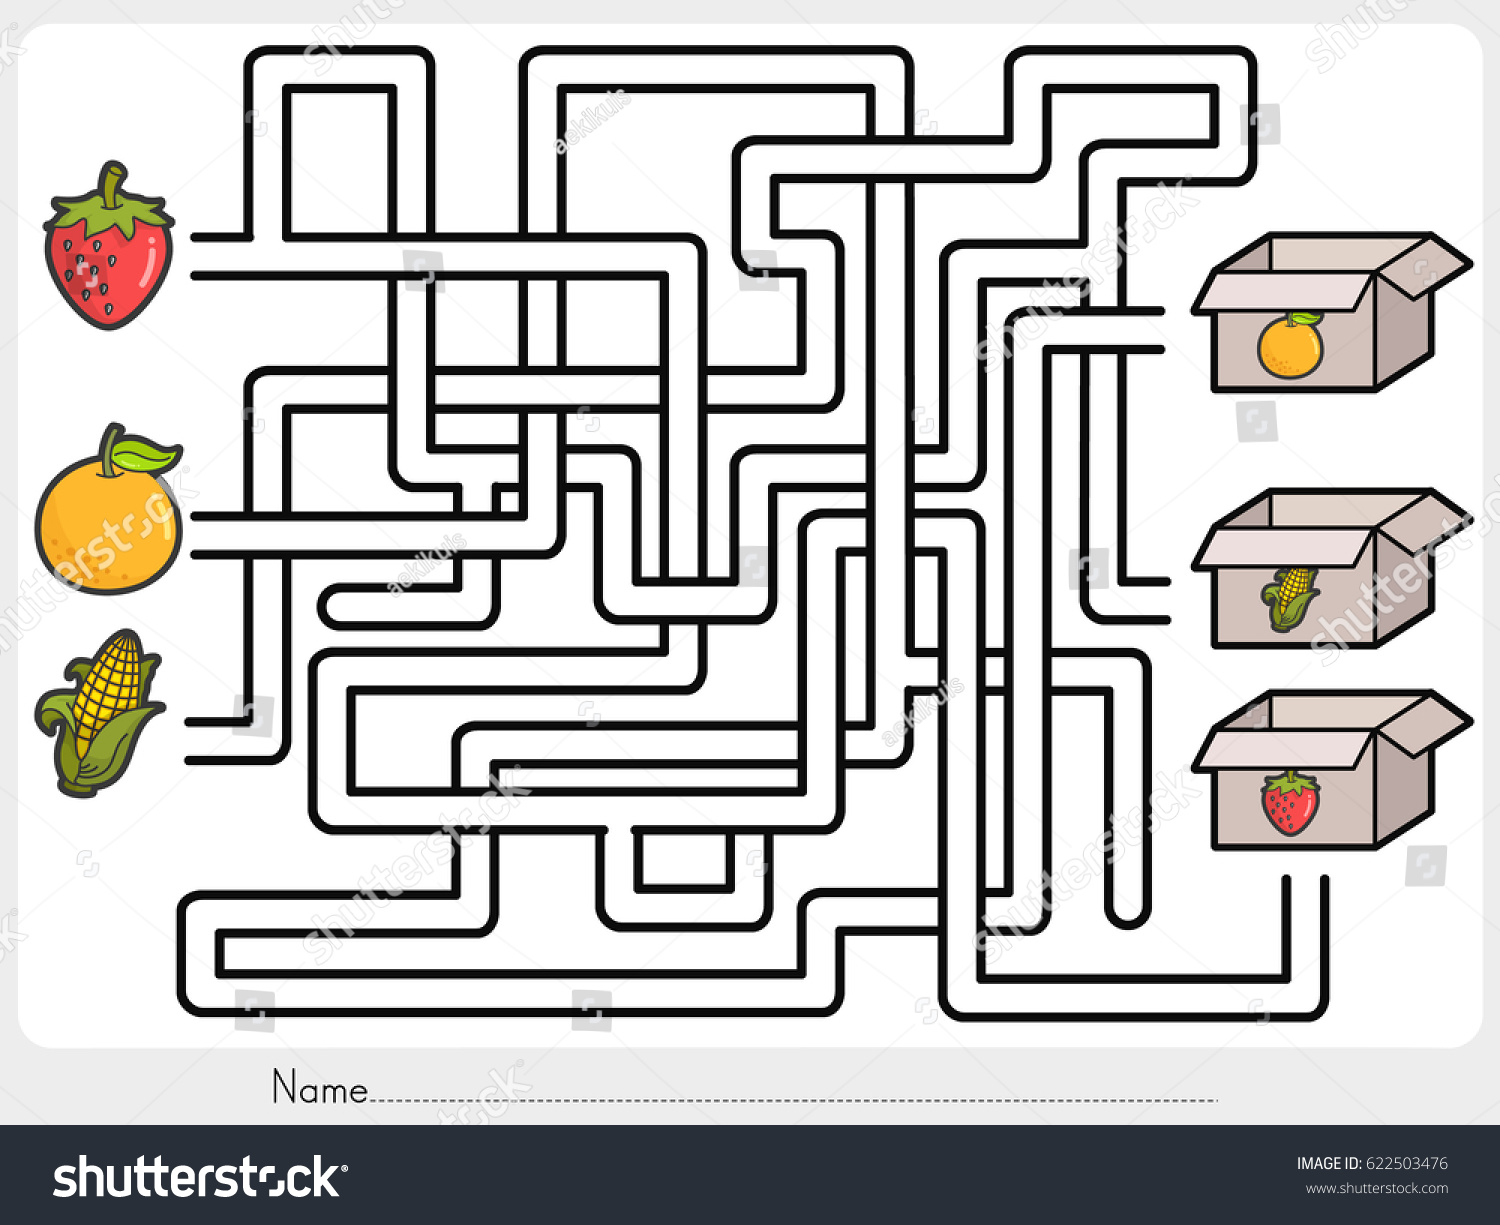 Maze Game Pick Fruits Box Worksheet Stock Vector